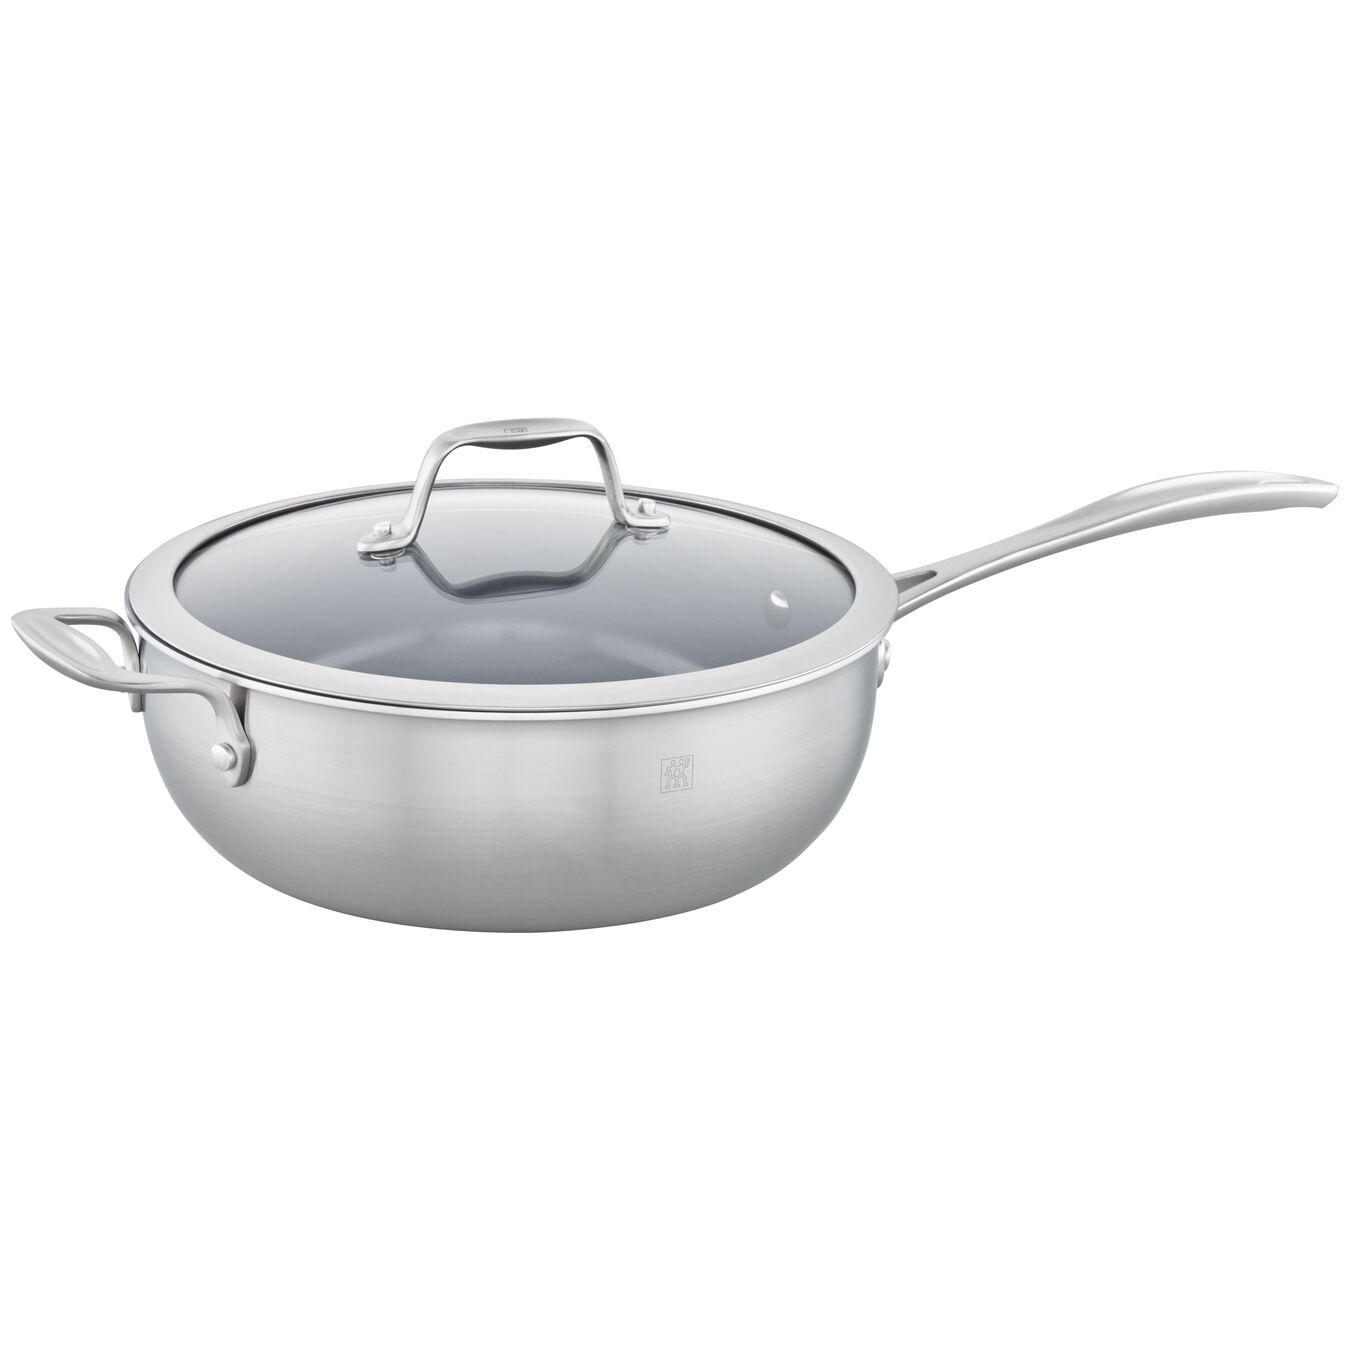 10-inch Saute pan, 18/10 Stainless Steel ,,large 1